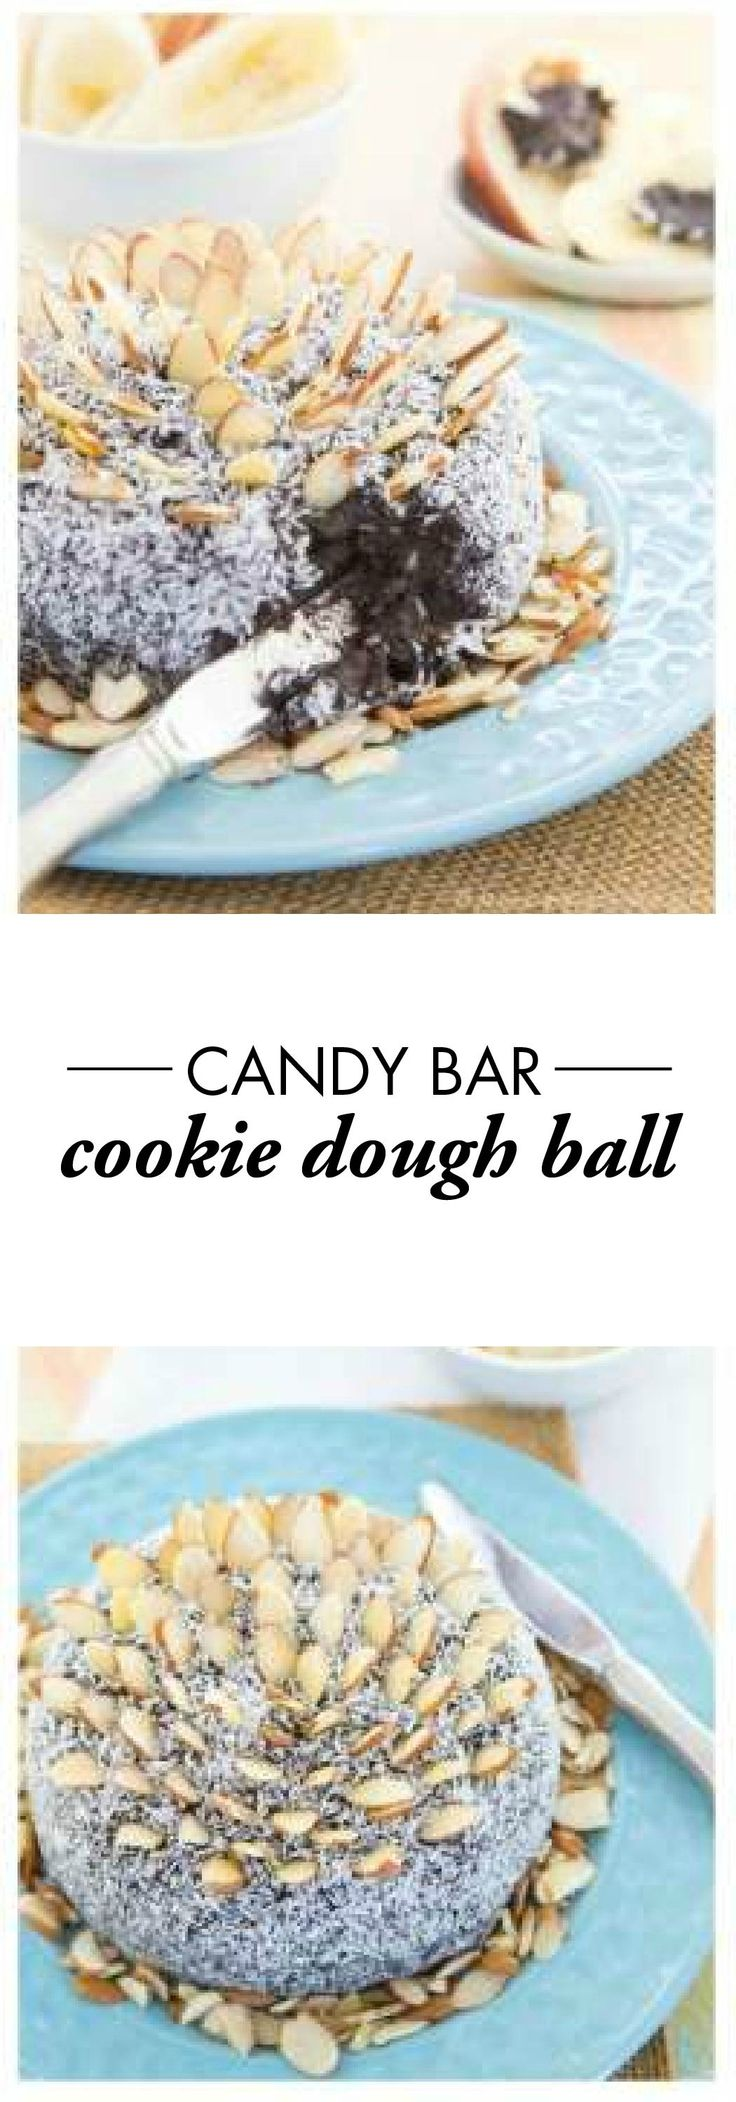 Flourless Candy Bar Cookie Dough Ball — The classic combination of chocolate, coconut, and almonds makes this decadent dessert dip so delicious! Make sure you have some Town House Pretzel Thins for an incredible combination of sweet and salty at your Easter gathering.